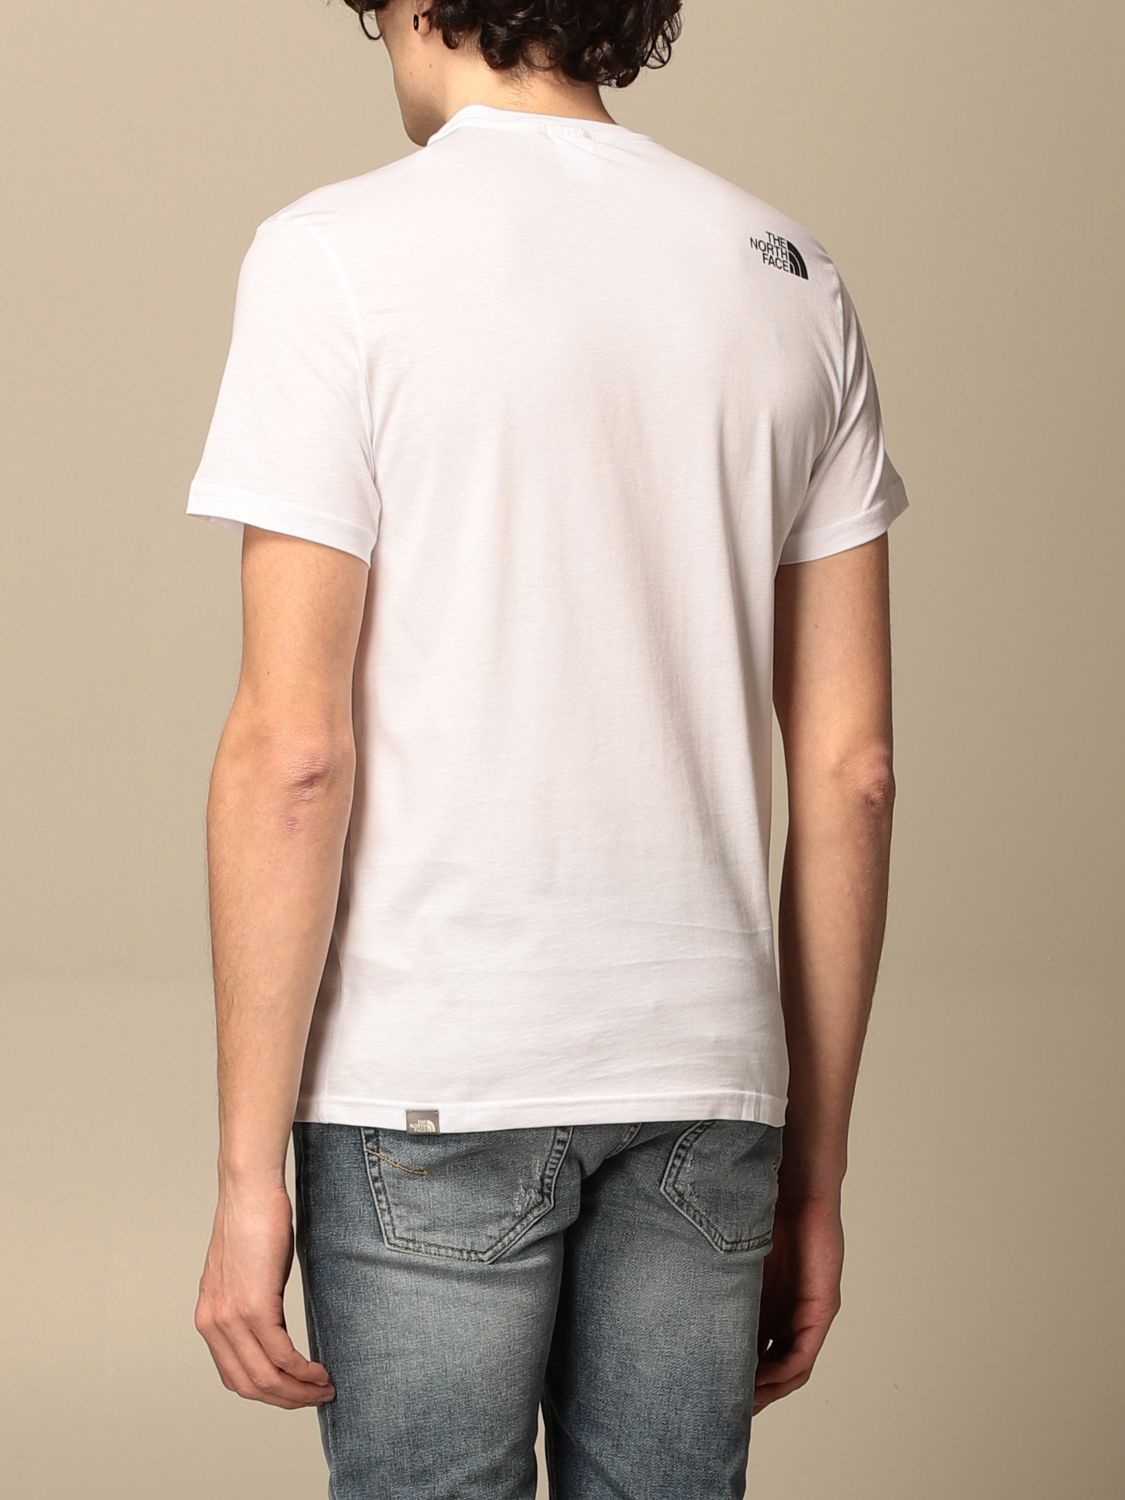 T-shirt The North Face: T-shirt men The North Face white 2